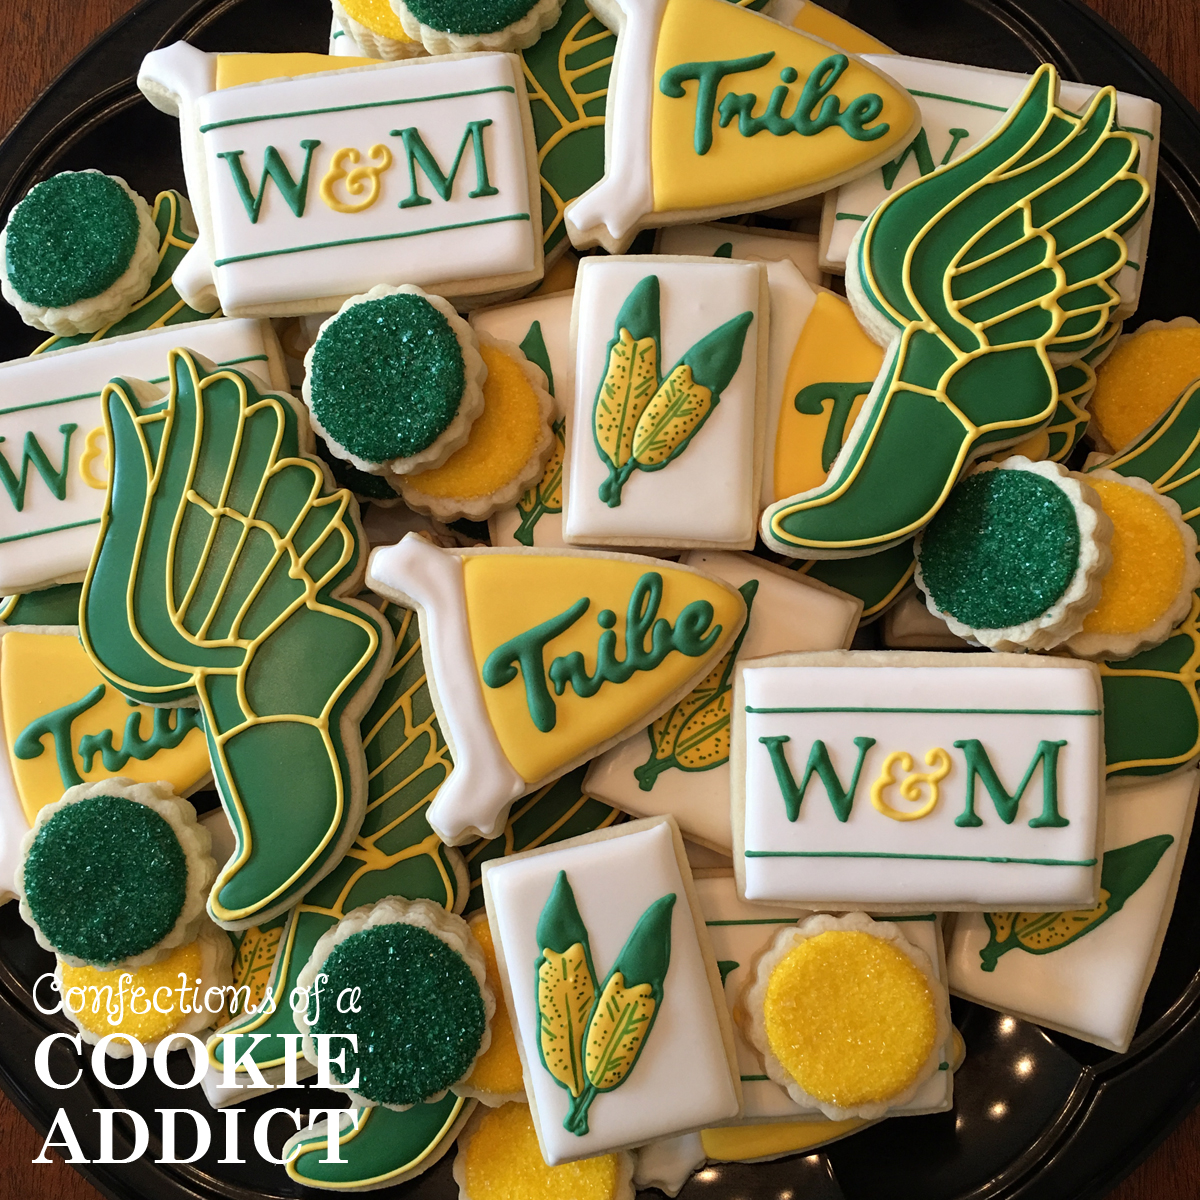 William & Mary Track Cookies